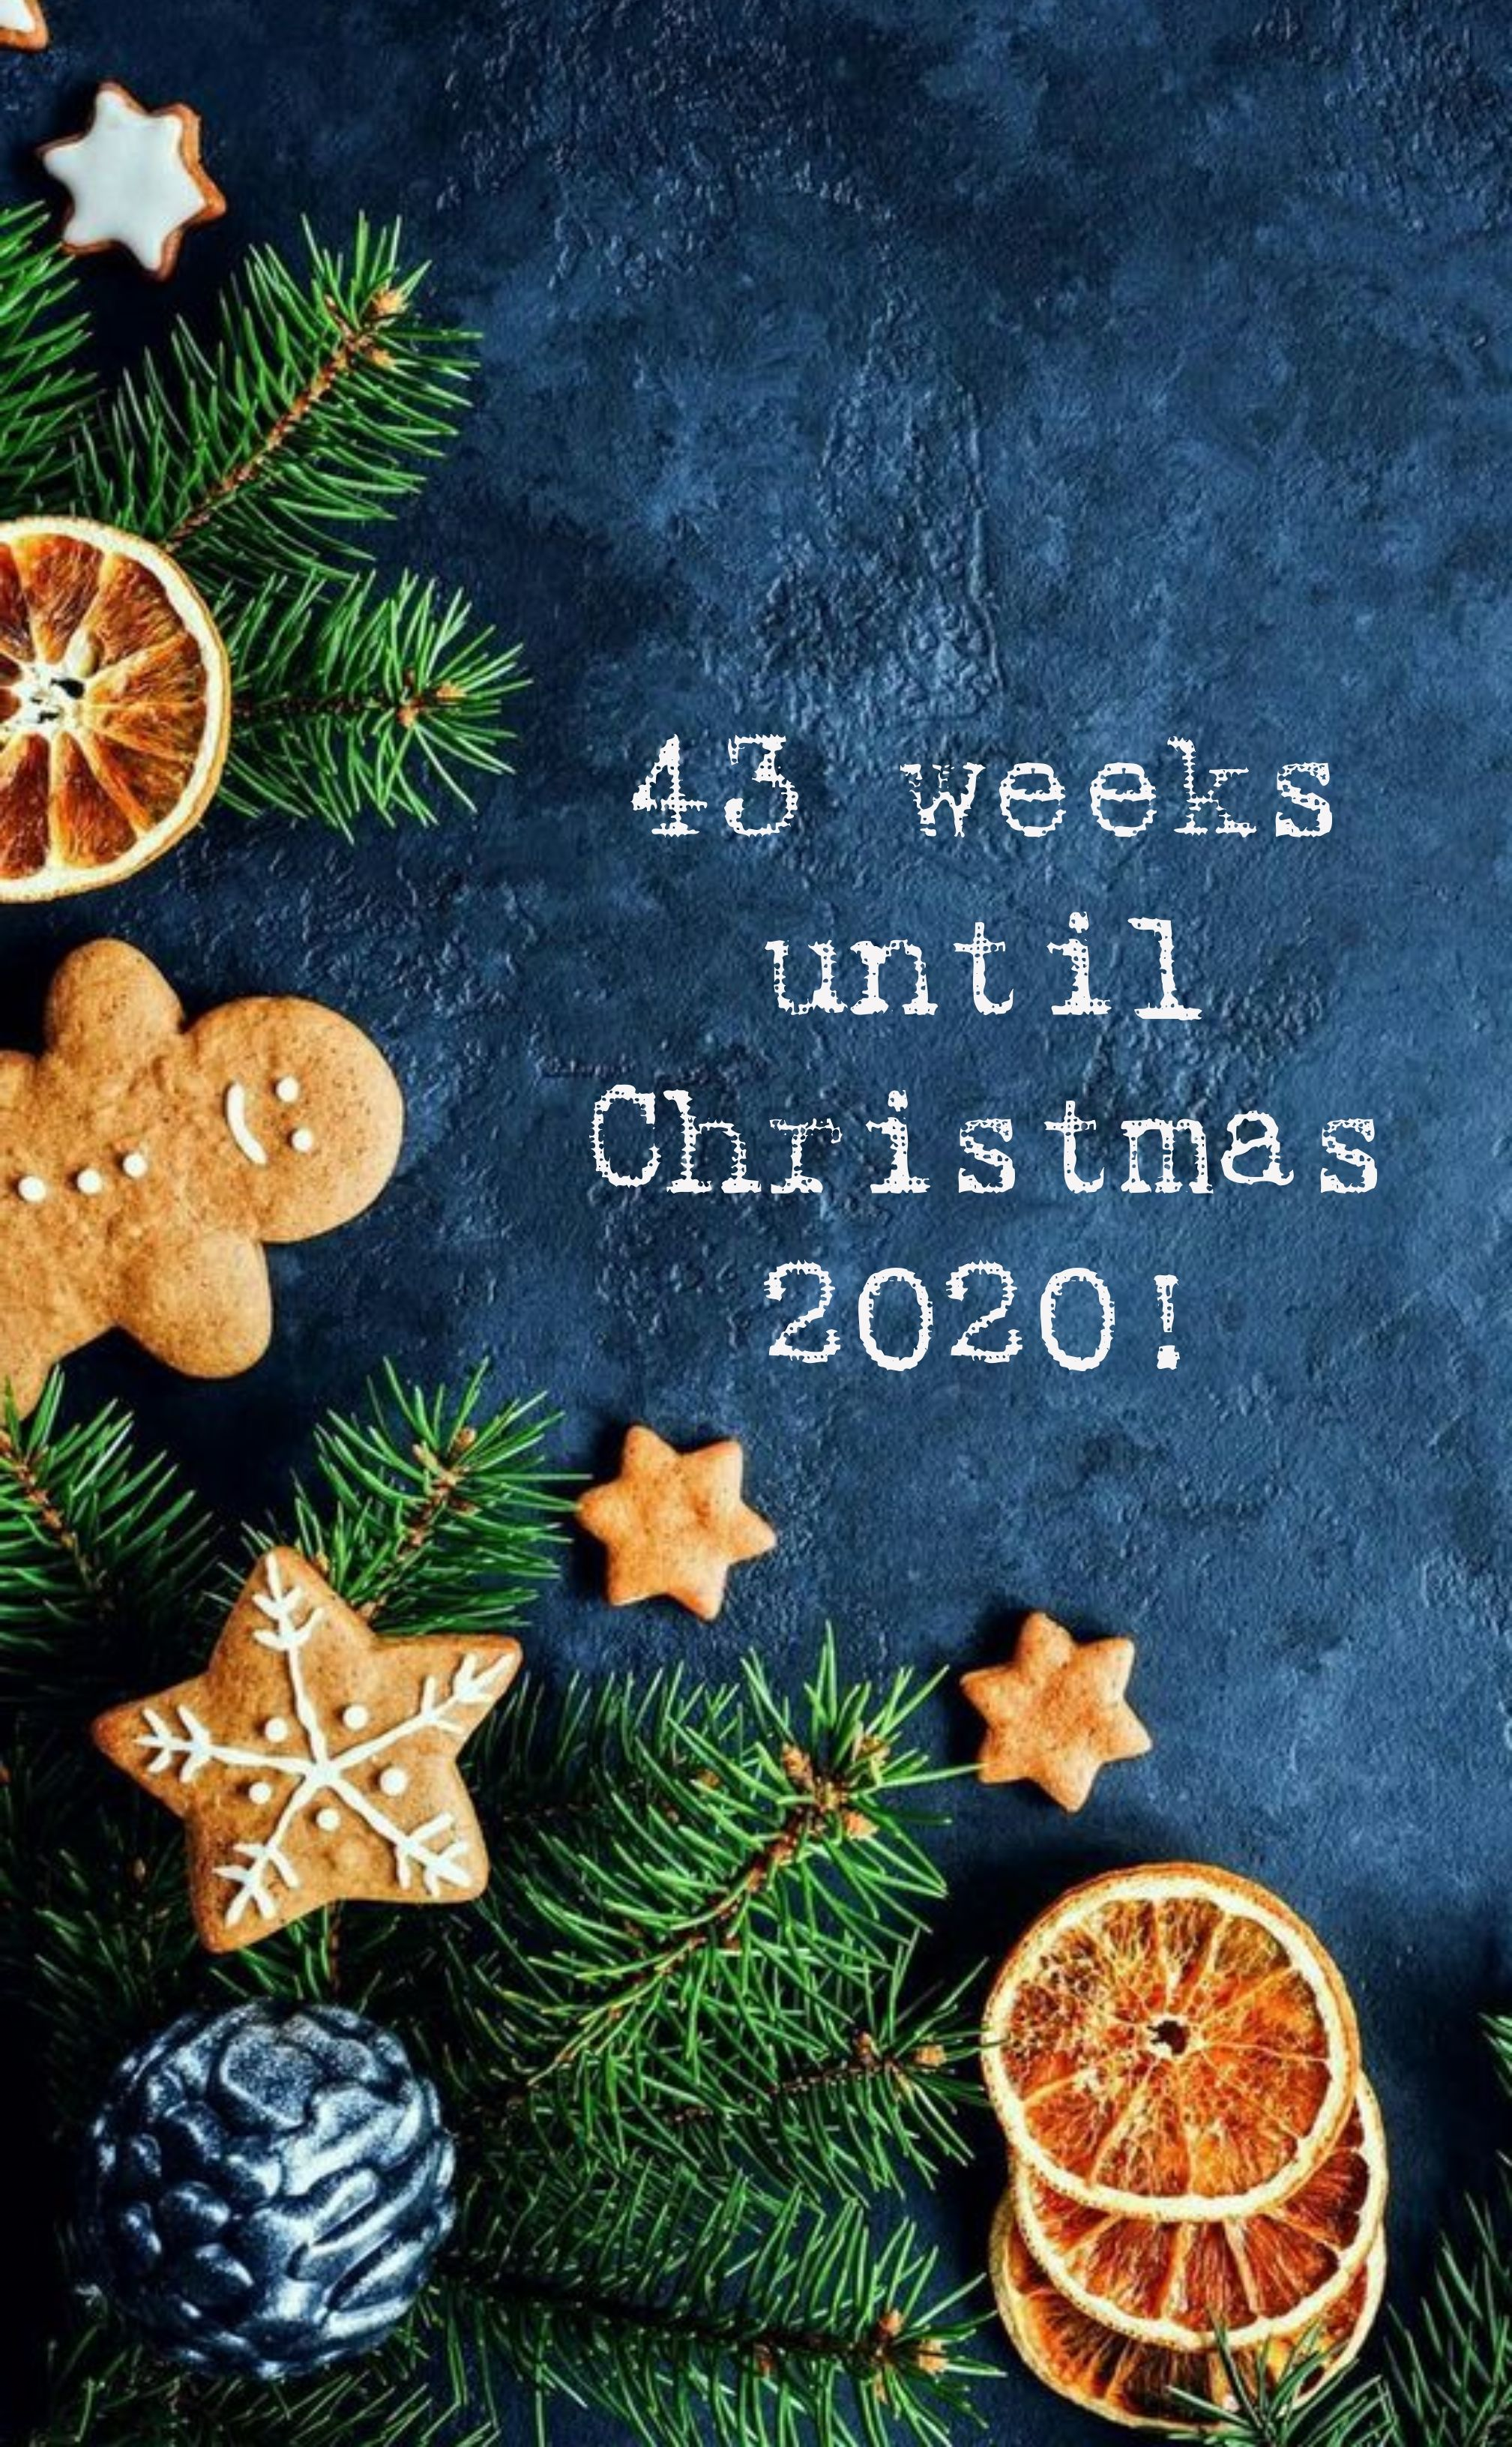 Fabric With Count Down For Christmas 2020 43 weeks until Christmas 2020 | Weeks until christmas, Christmas